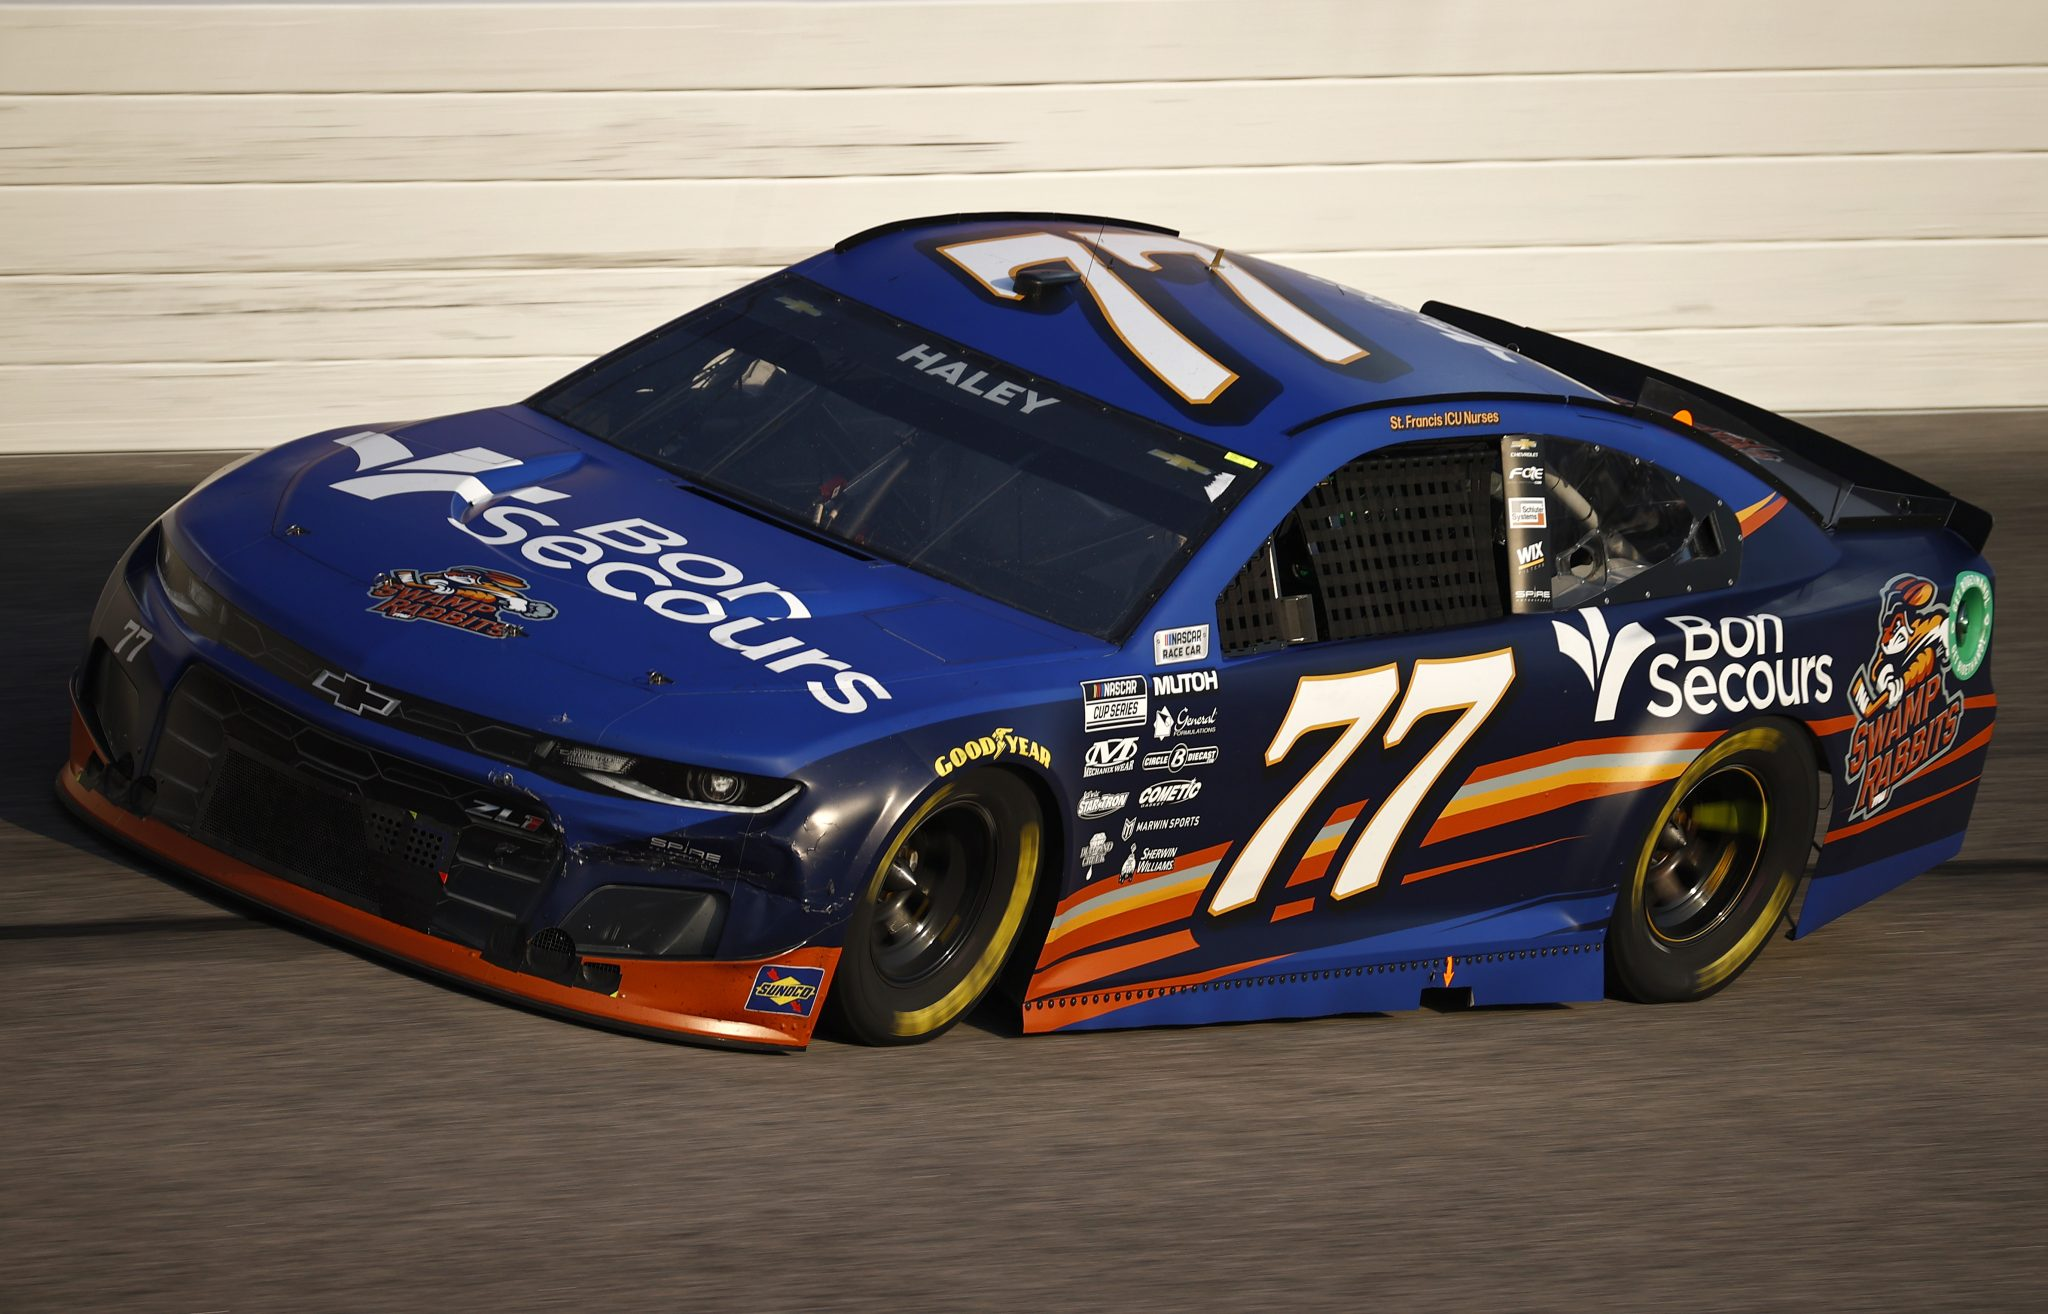 DARLINGTON, SOUTH CAROLINA - SEPTEMBER 05: Justin Haley, driver of the #77 Bon Secours/Swamp Rabbits Chevrolet, drives during the NASCAR Cup Series Cook Out Southern 500 at Darlington Raceway on September 05, 2021 in Darlington, South Carolina. (Photo by Jared C. Tilton/Getty Images) | Getty Images